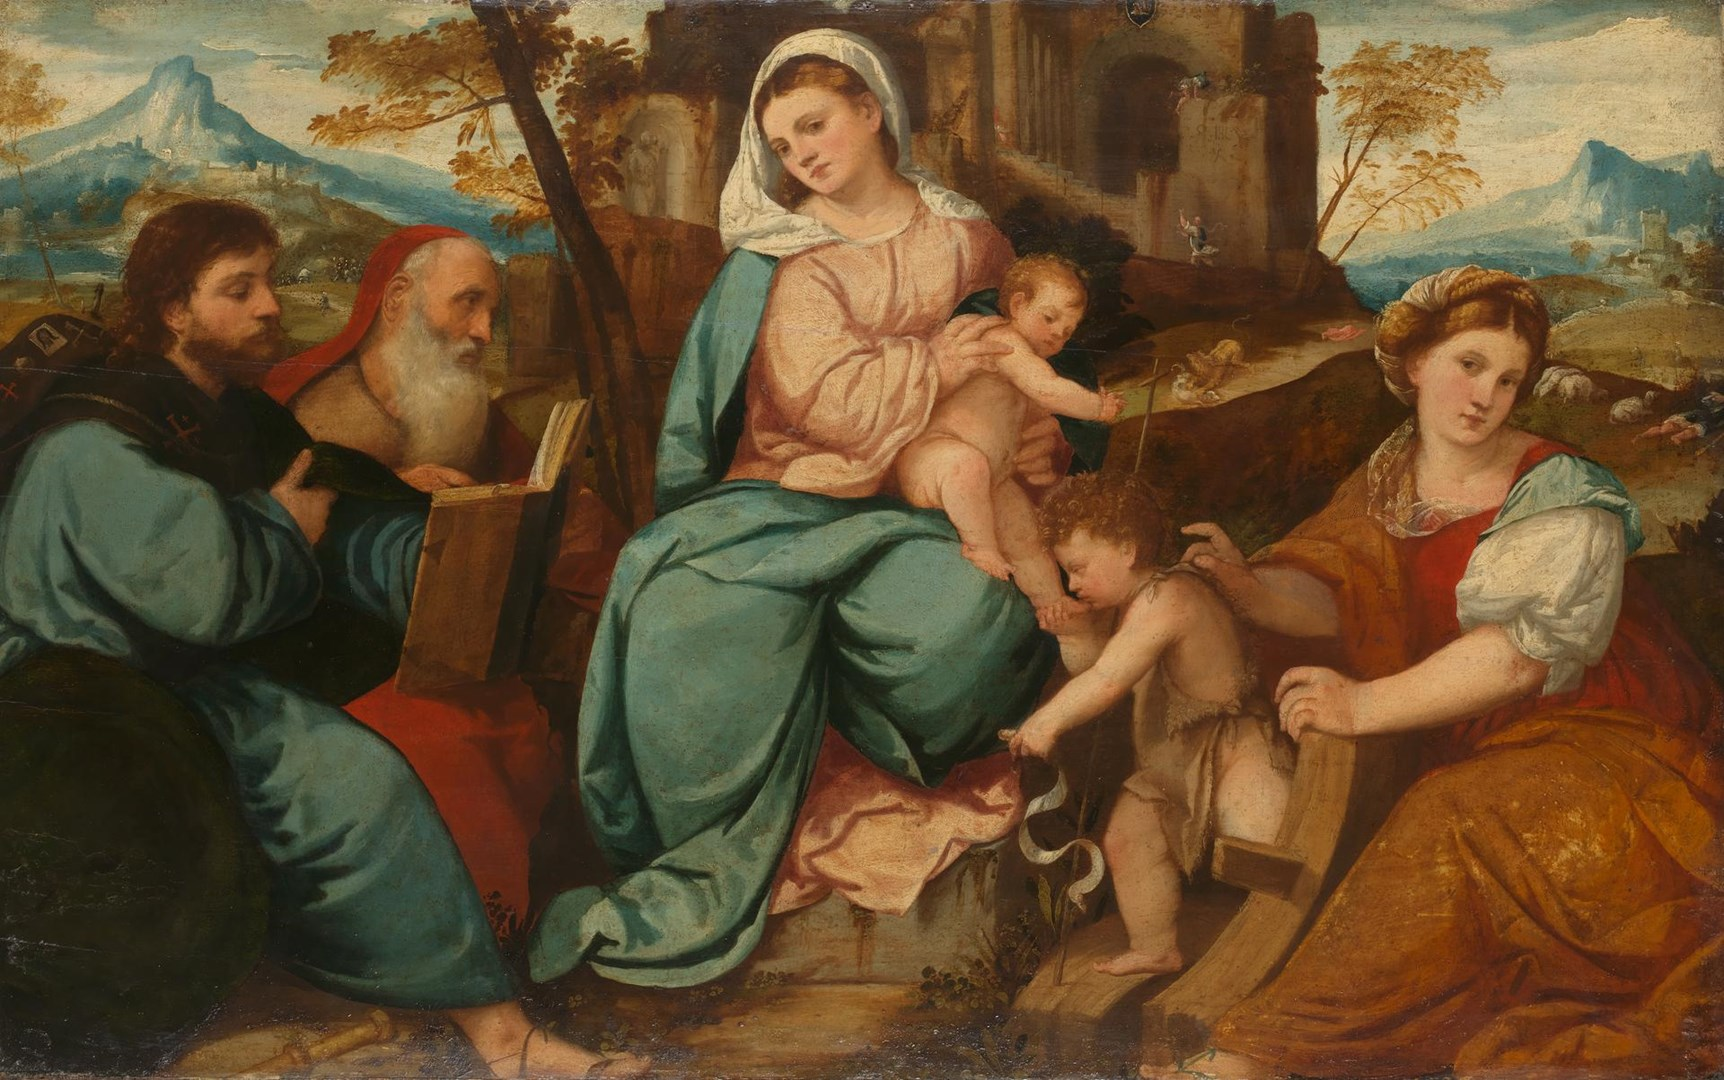 The Madonna and Child with Saints by Bonifazio di Pitati